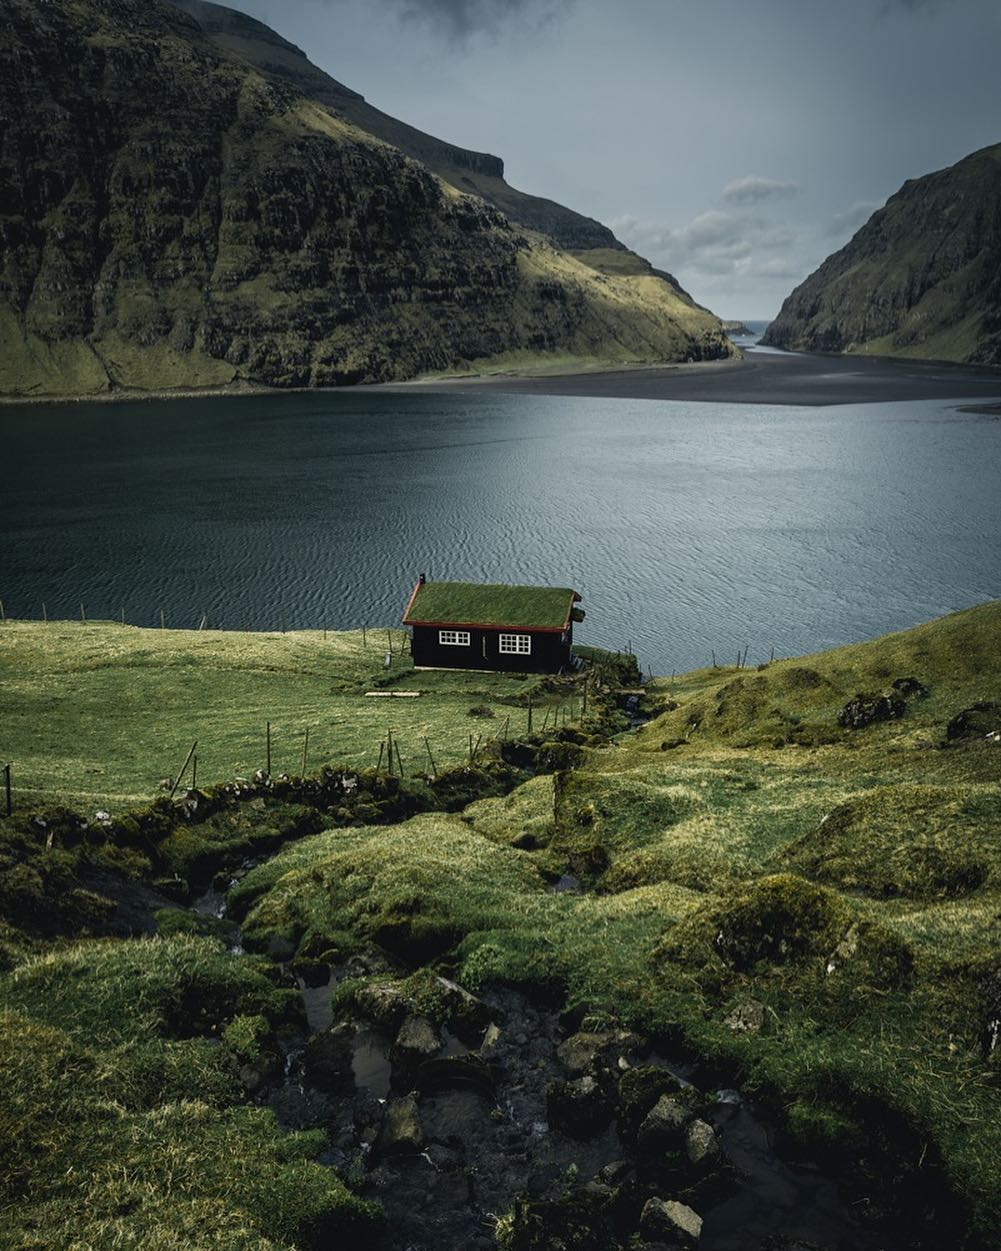 Stunning Travel Landscape Photography by Philipp Frerich